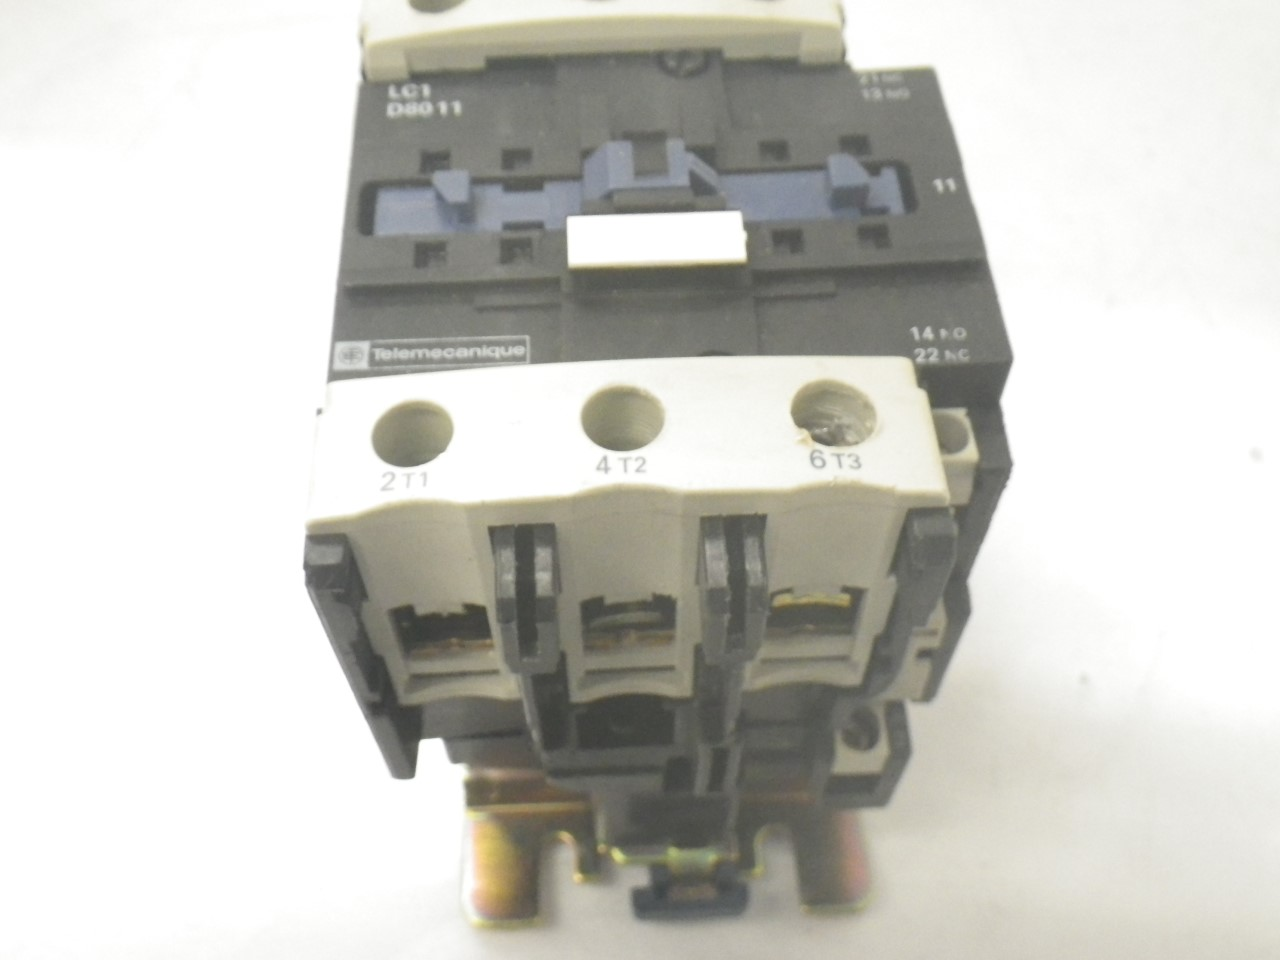 IMGP8343125A, 600V (14)LC1D8011 Telemecanique Contactor Magnetic Power Relay 125a, 600v (Used Tested)